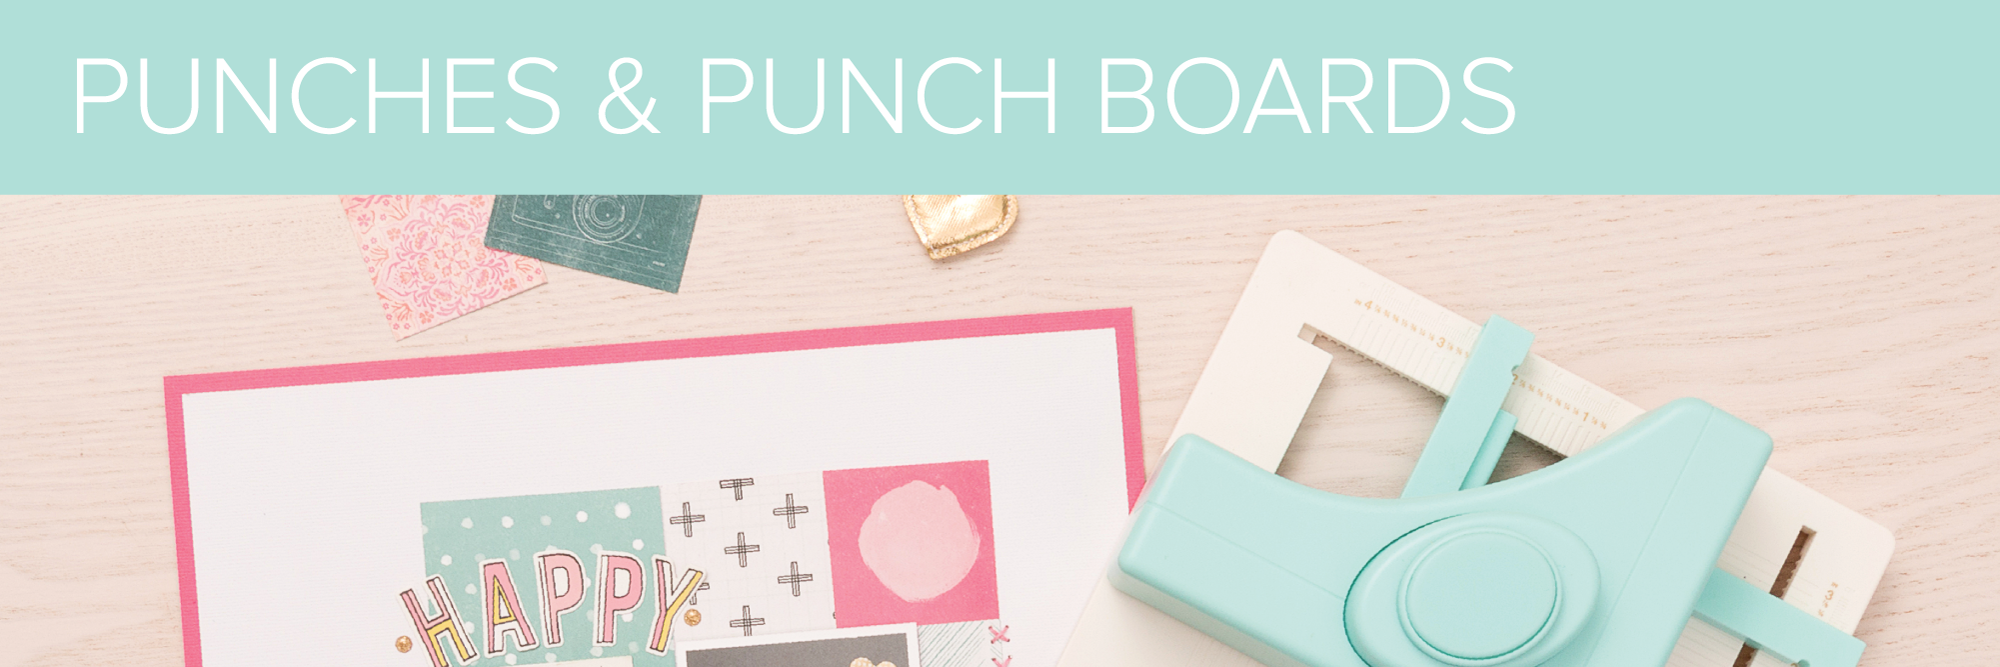 Punches and Punch Boards